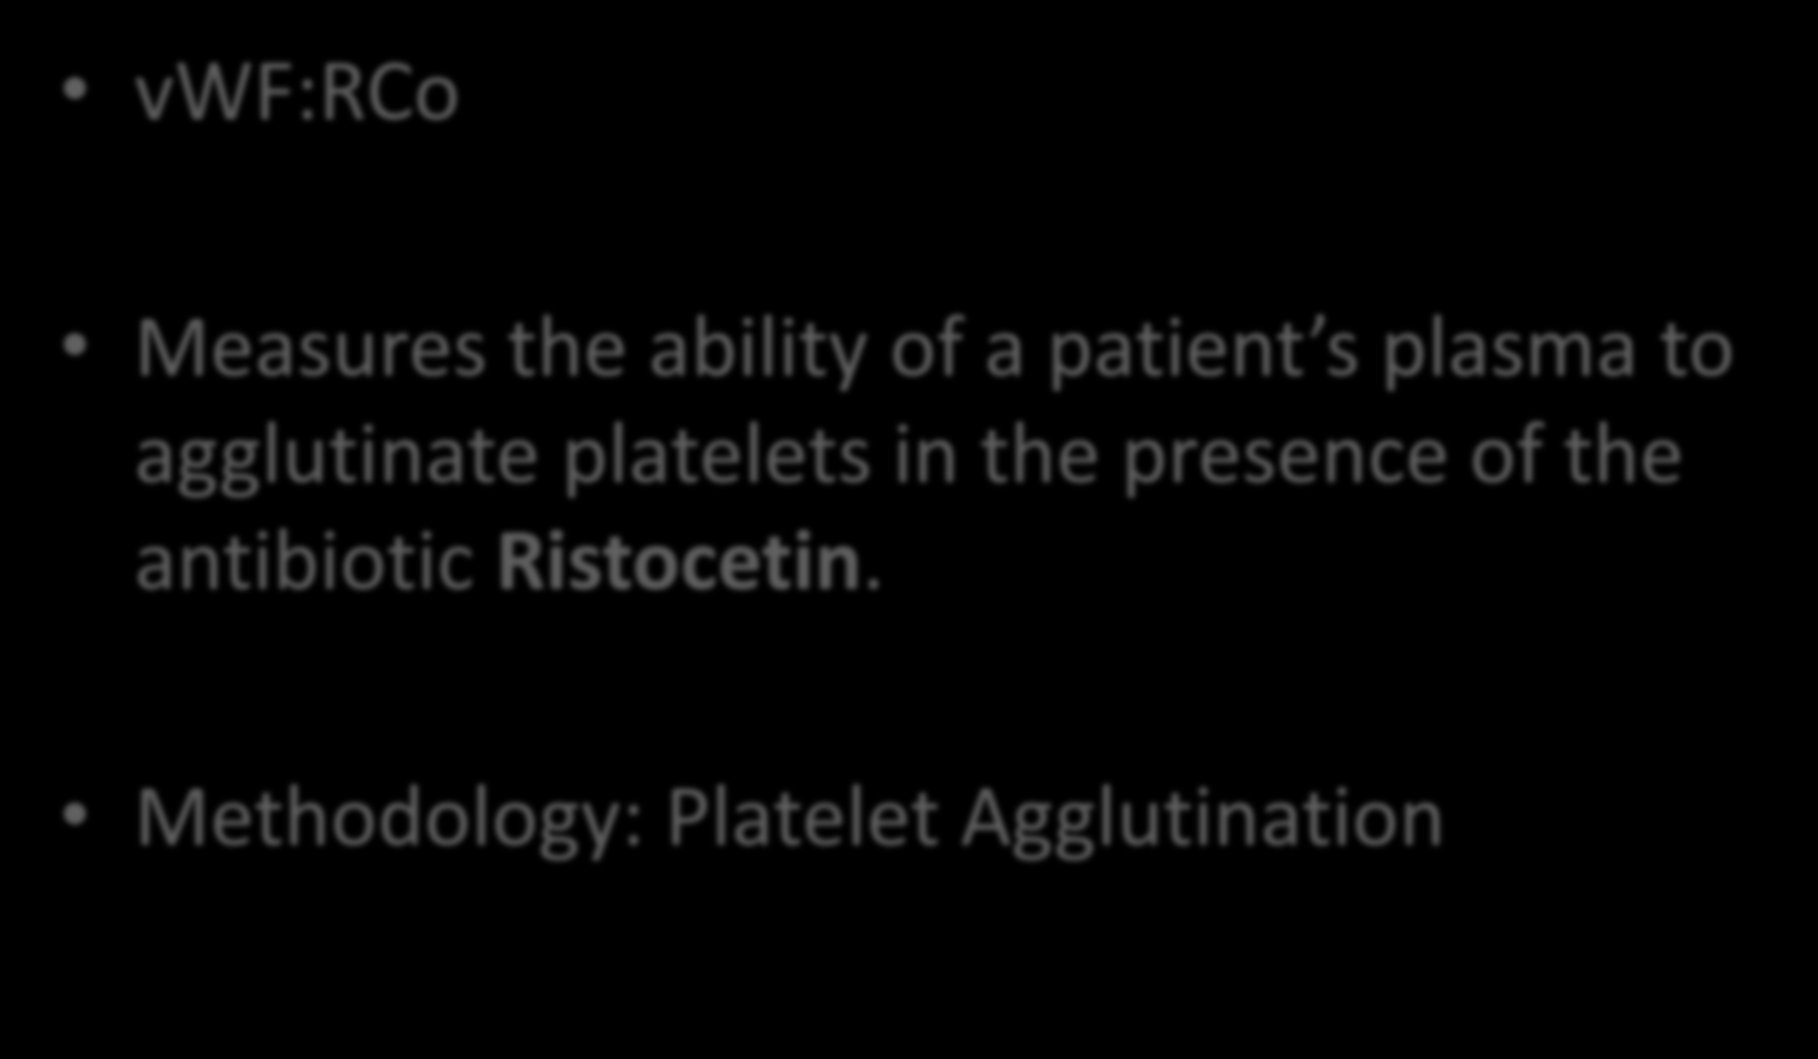 von Willebrand Factor Activity vwf:rco (Ristocetin Cofactor) Measures the ability of a patient s plasma